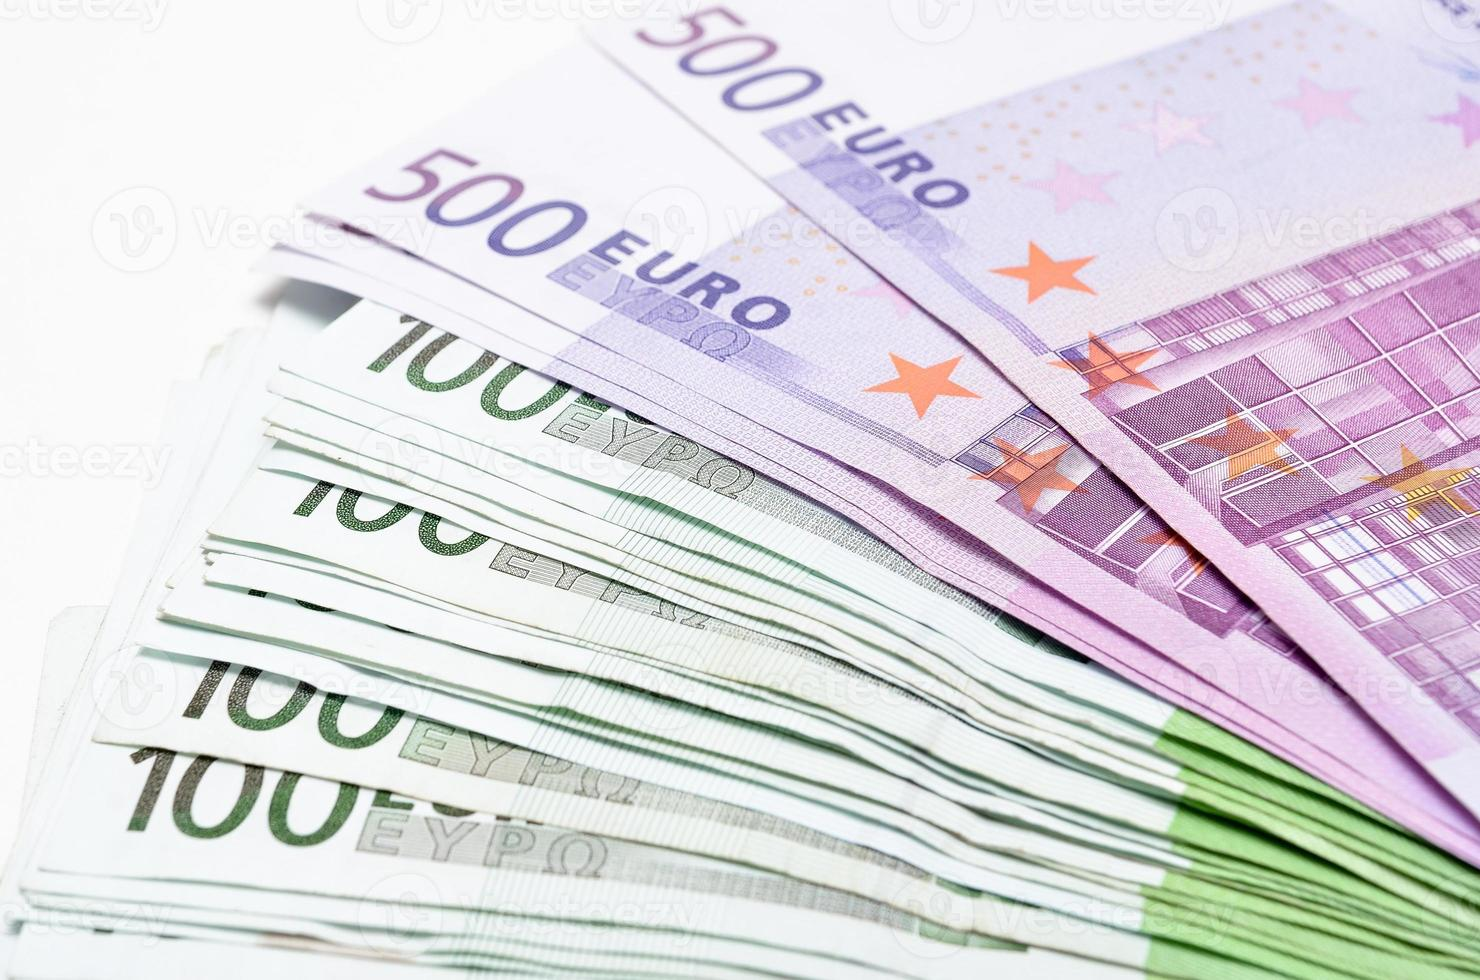 Stack of money euro bills banknotes. Euro currency from Europe photo